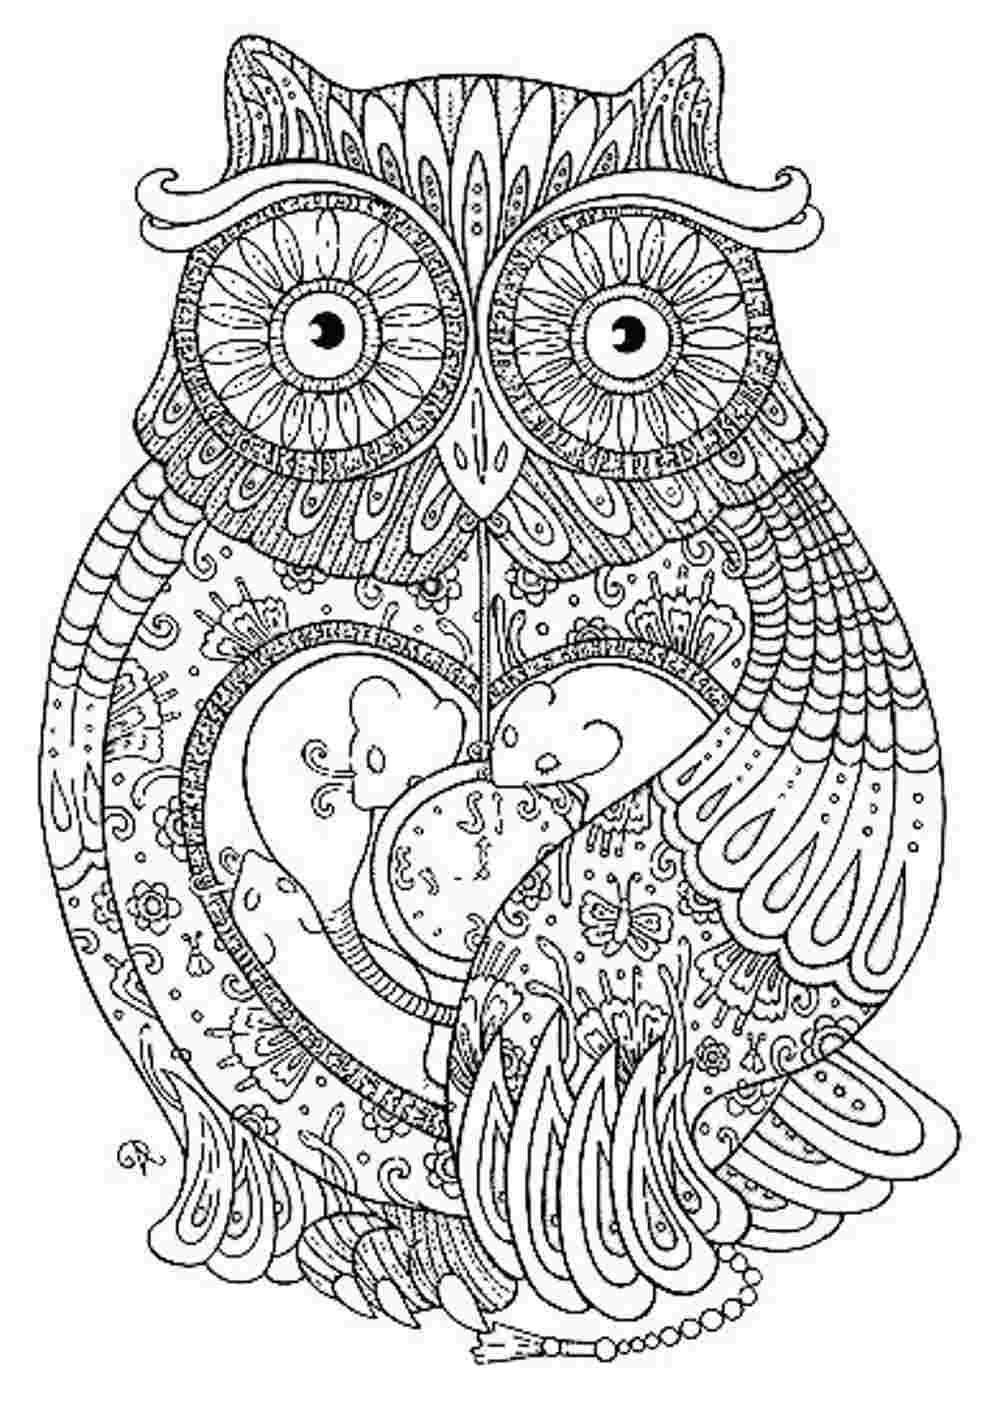 Printable Coloring Pages Adults Free  44 Awesome Free Printable Coloring Pages for Adults